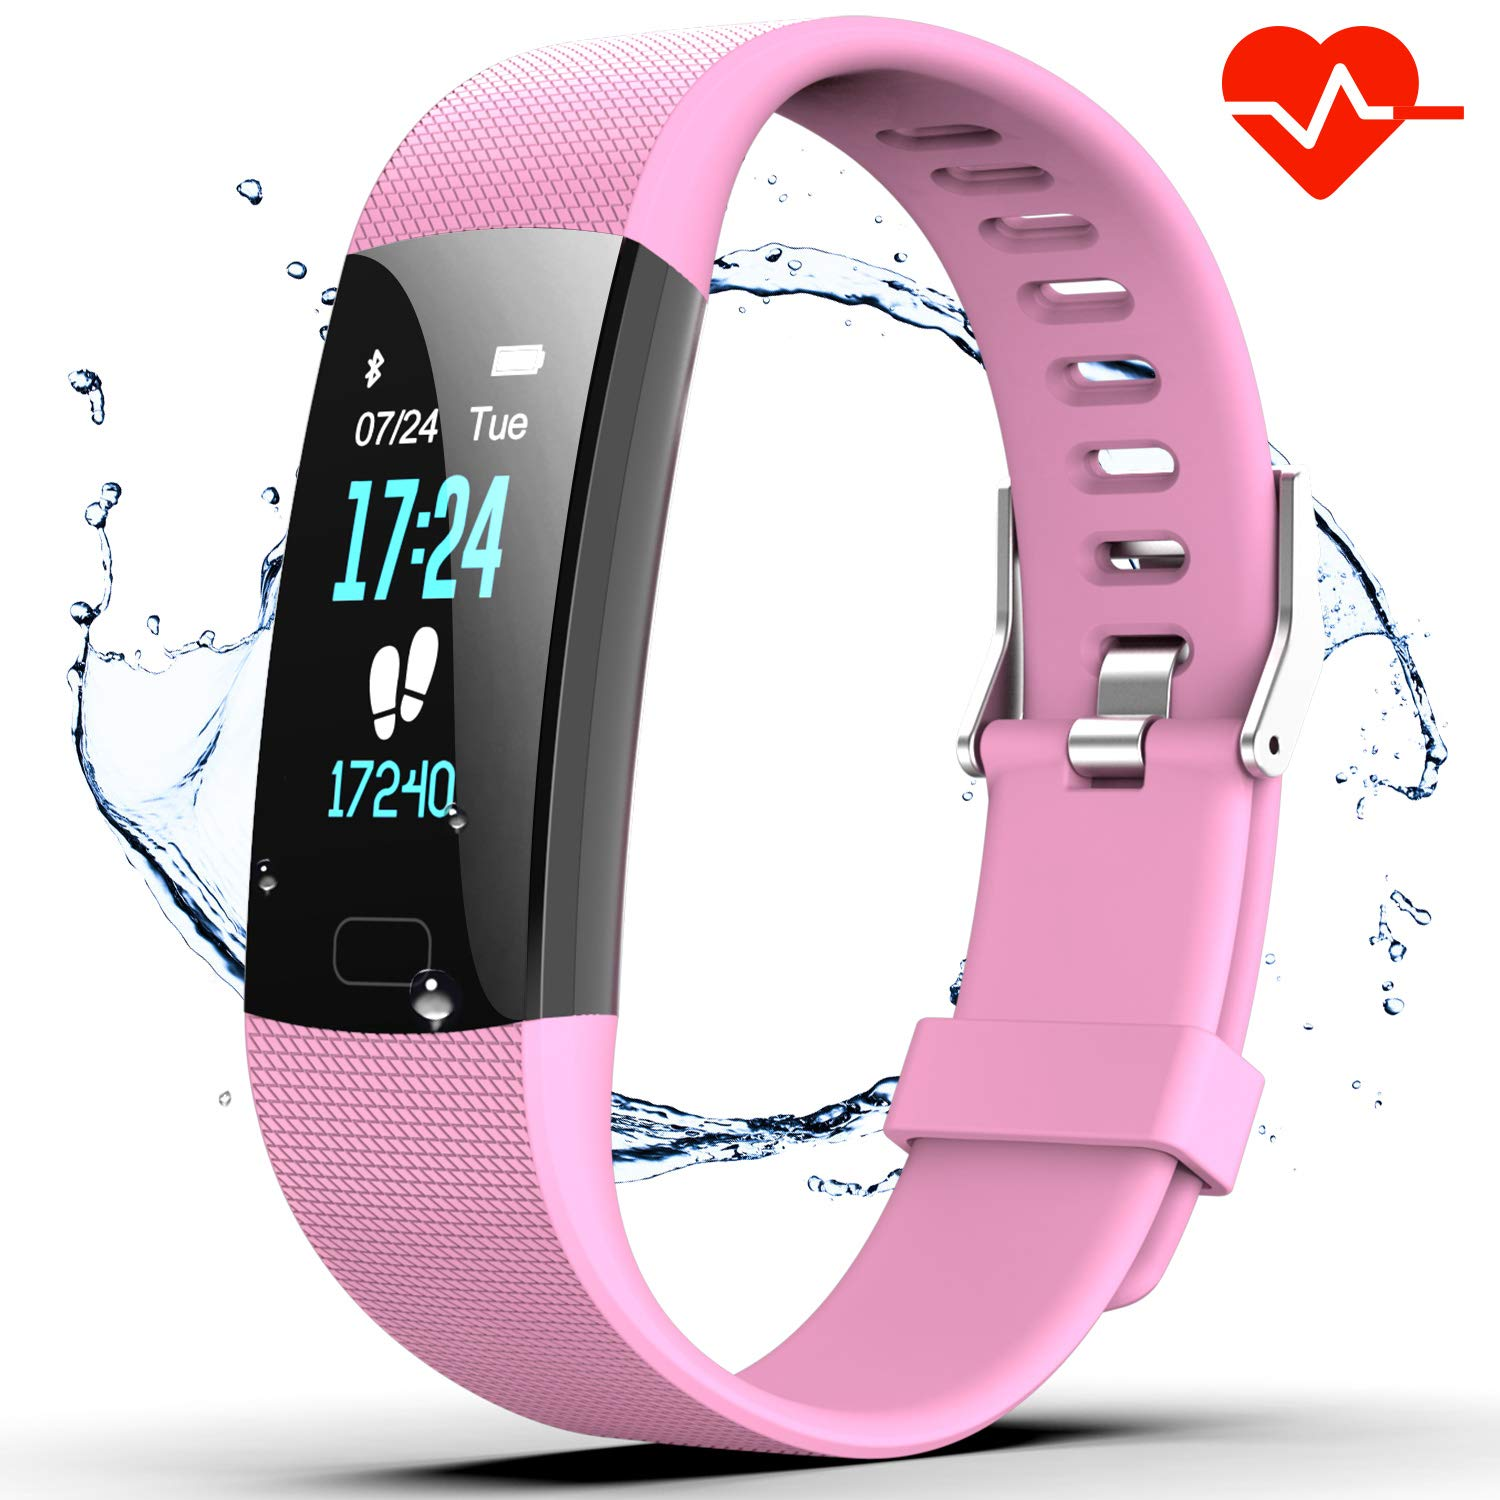 Fitness Tracker HR, Y1 Activity Tracker Watch with Heart Rate Monitor, Pedometer IP67 Waterproof Sleep Monitor Step Counter for Android & iPhone (Pink)